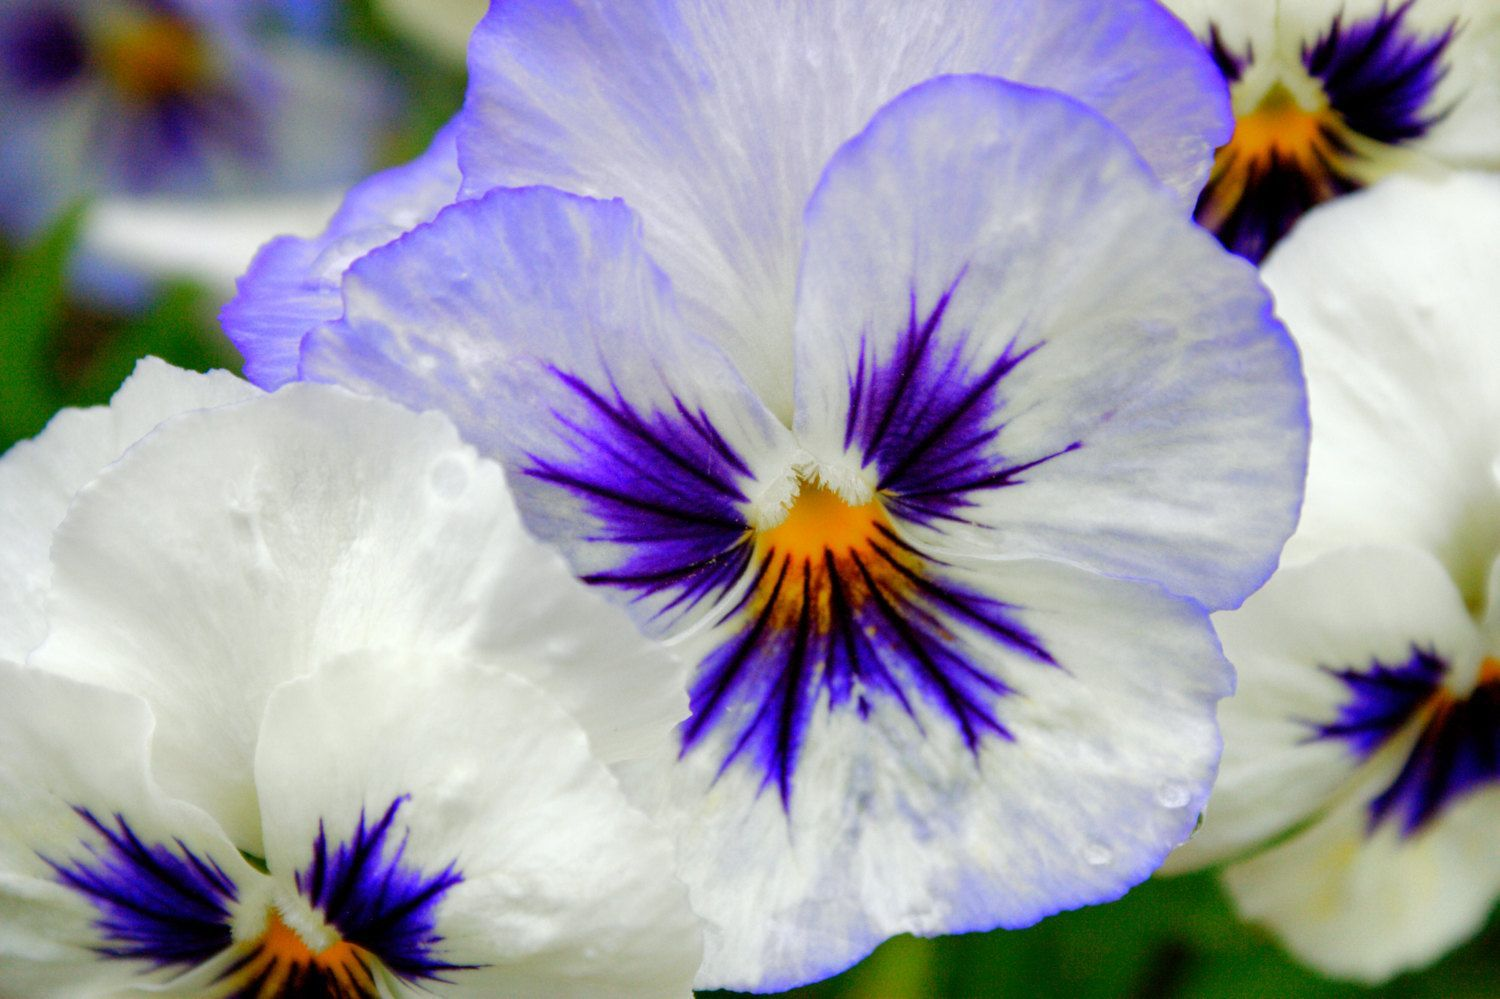 Hottest Cost Free White Pansies Ideas Pansies Are The Colorful Flowers With Faces A Cool Weather Favorite Pansies Are Ideal For Bo Costfree Cicek Menekse